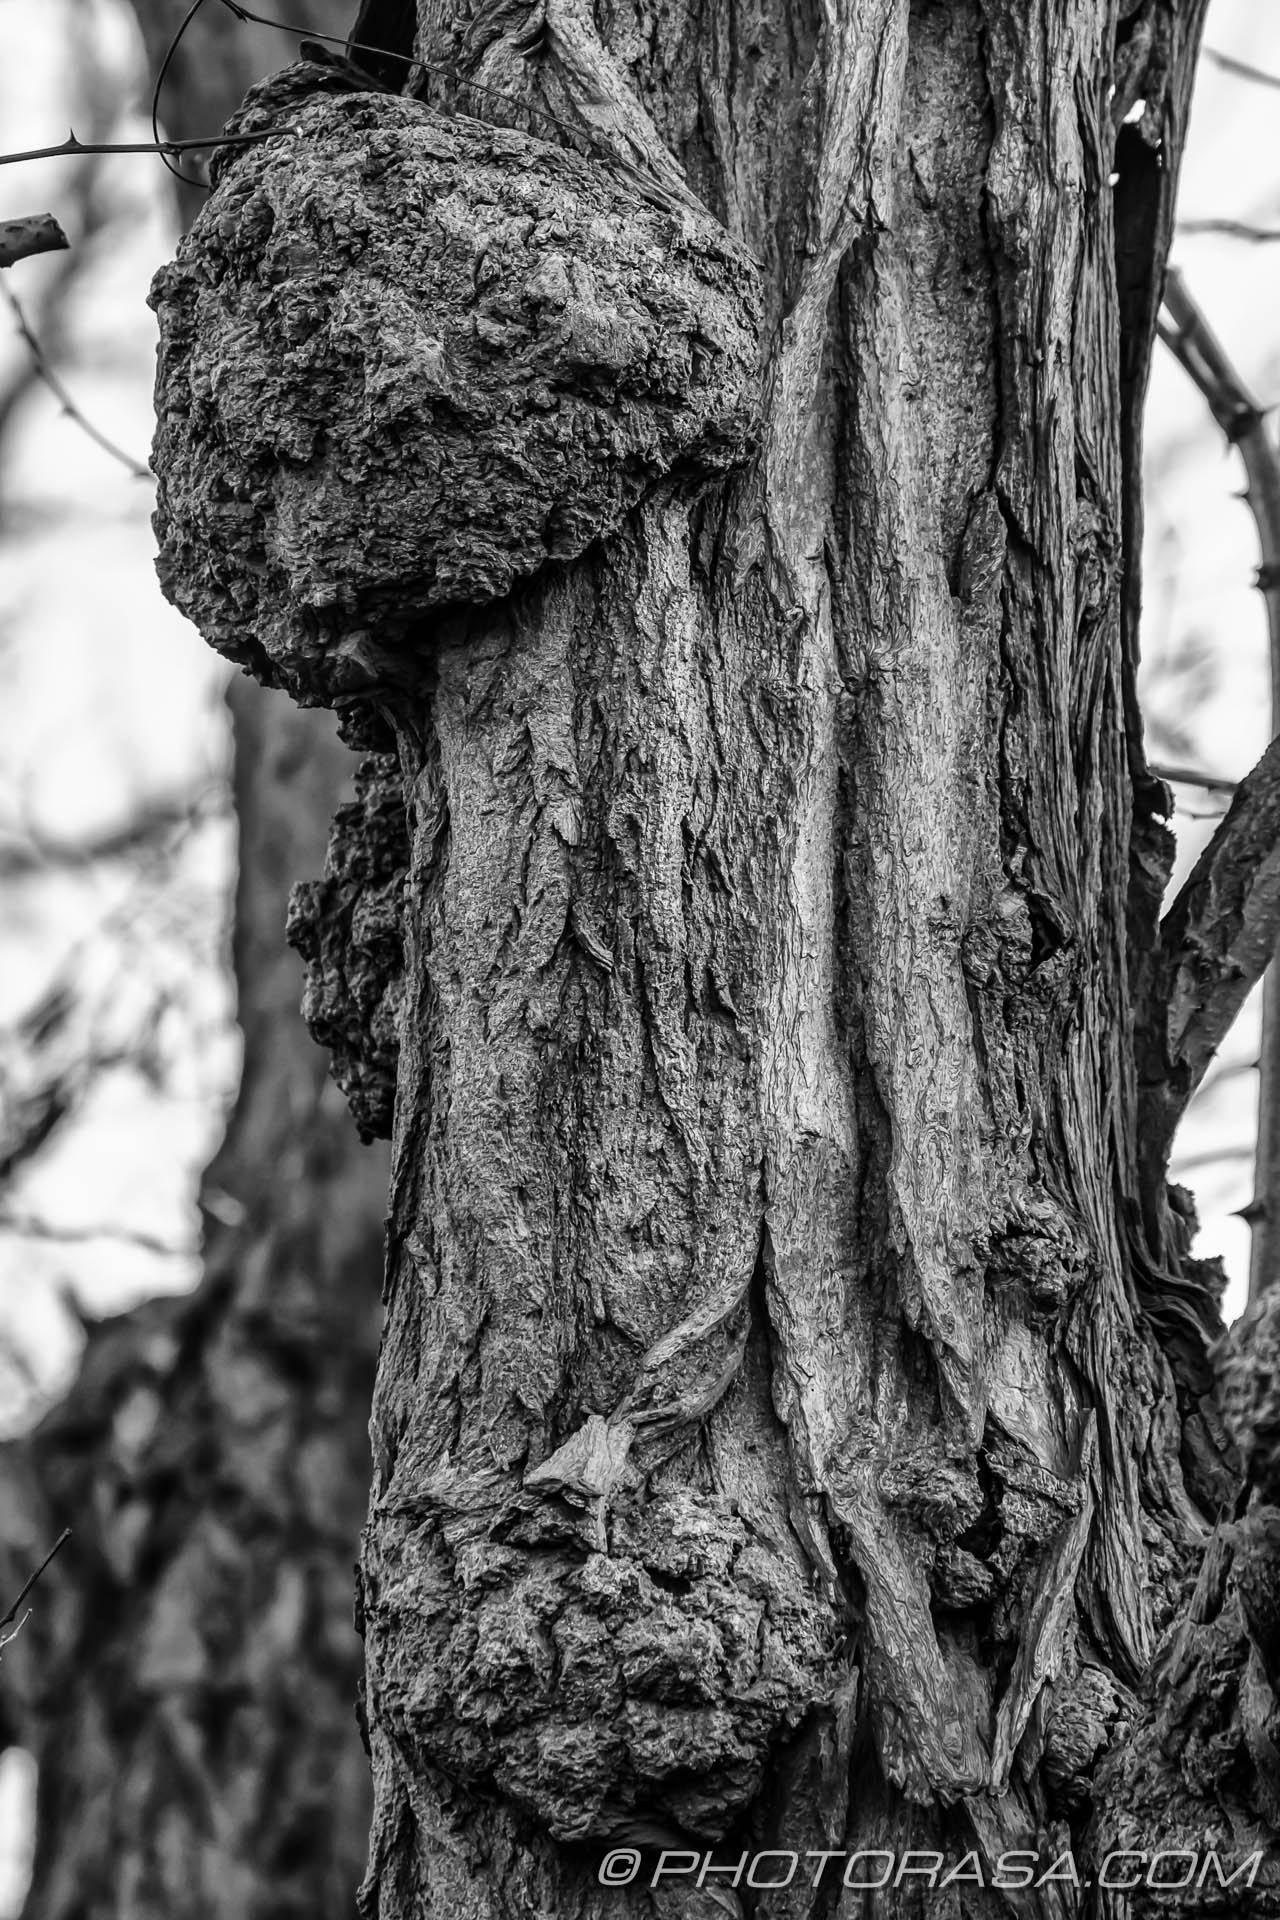 http://photorasa.com/wood-and-bark-textures/bark-growth/